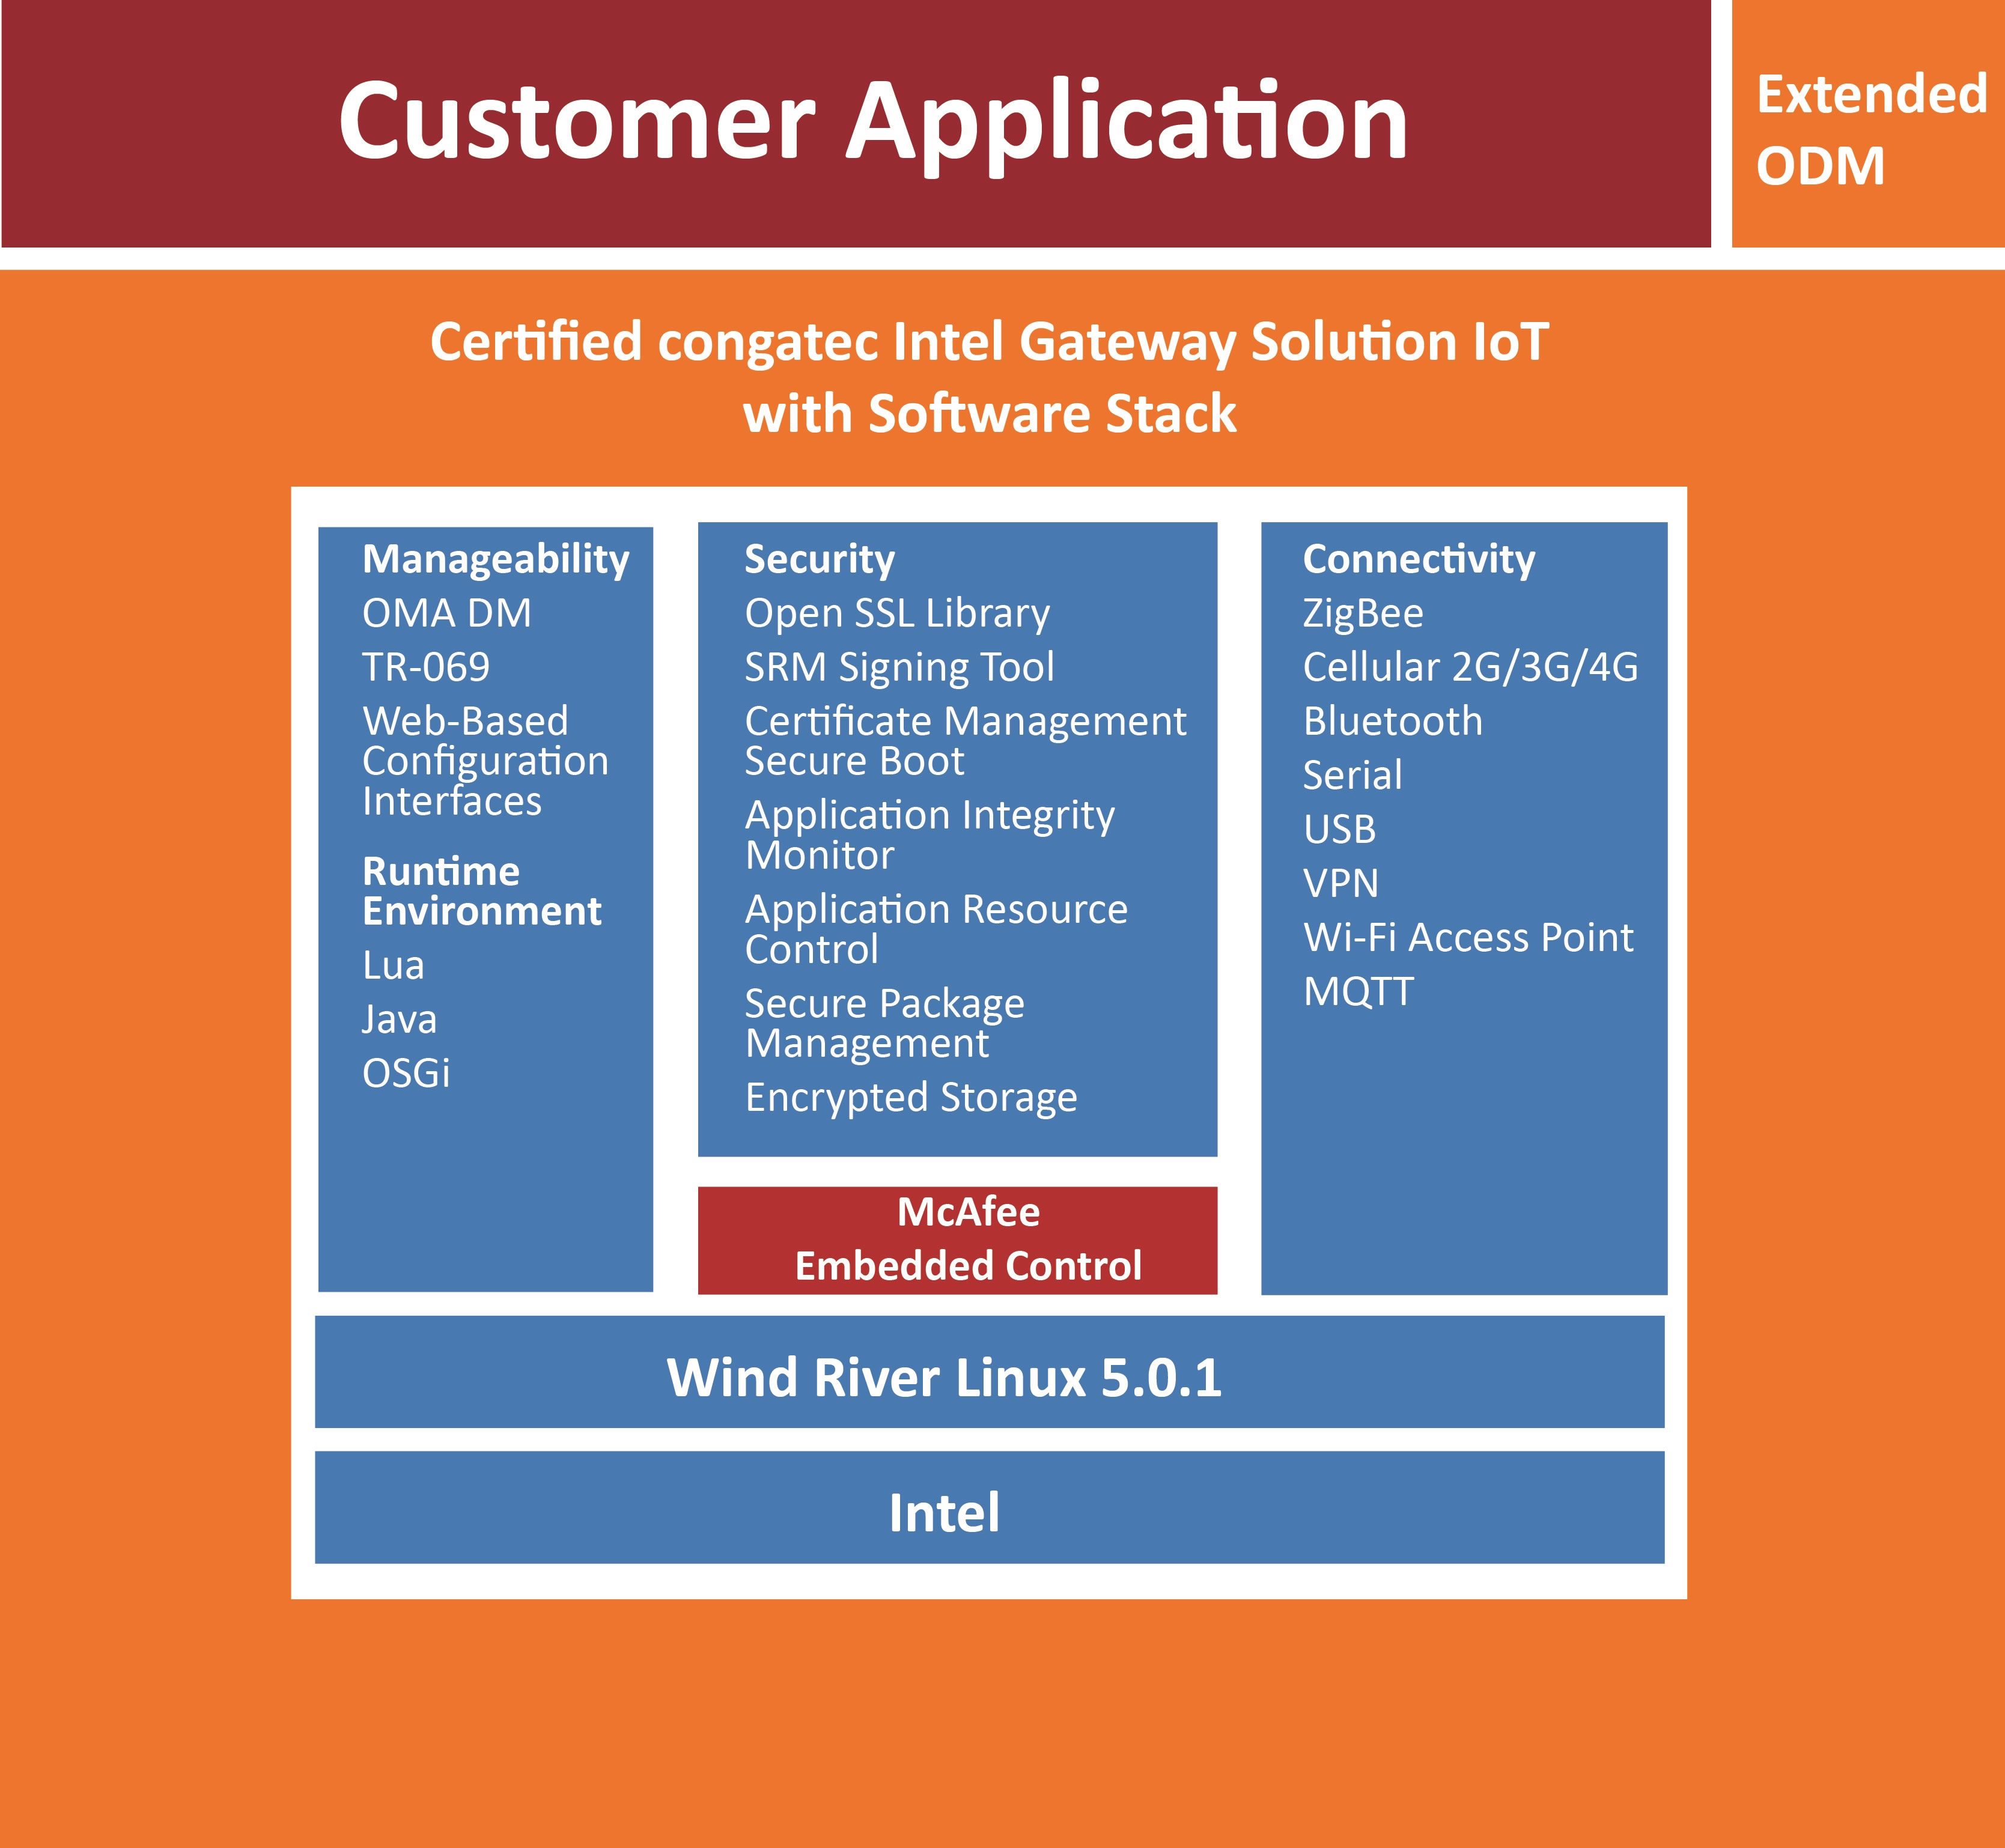 Figure 2 - congatec's certified Intel Gateway Solution for the IoT.